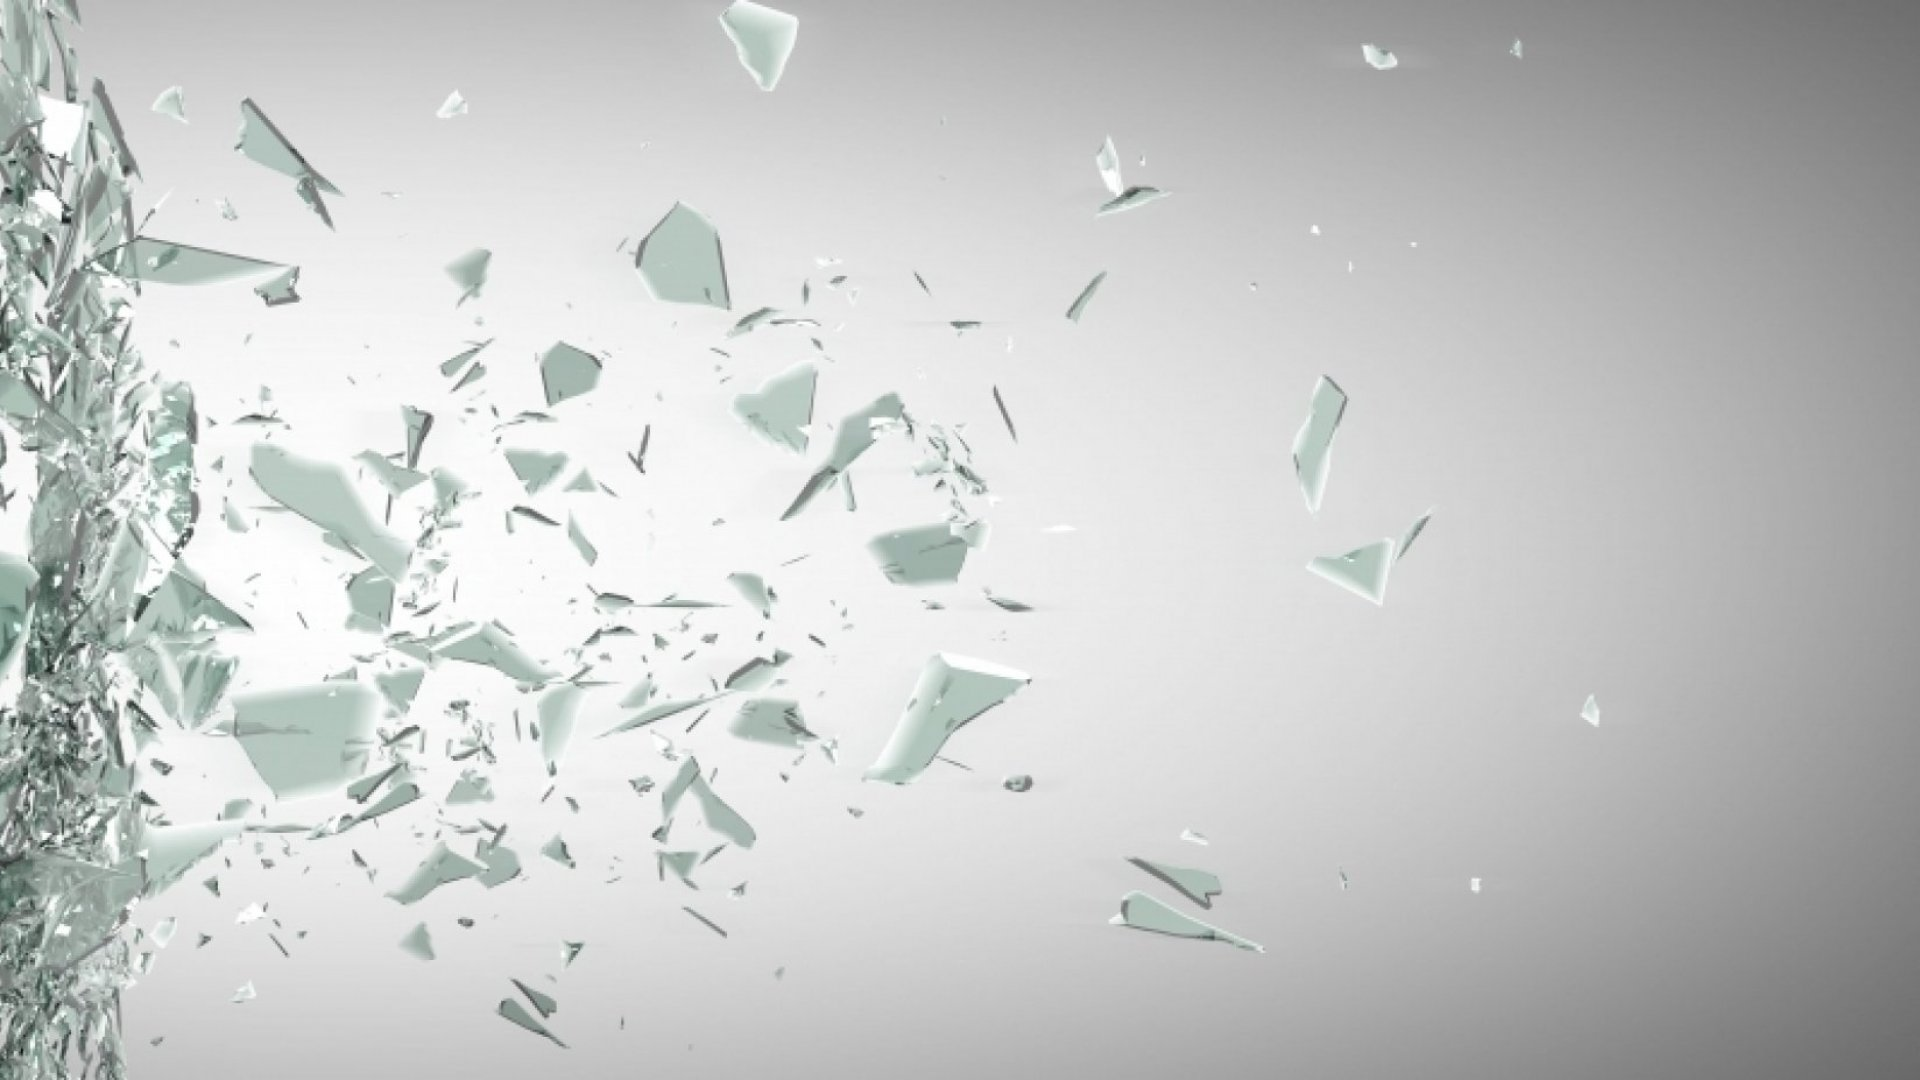 10 Steps to Recovering After a Business Failure